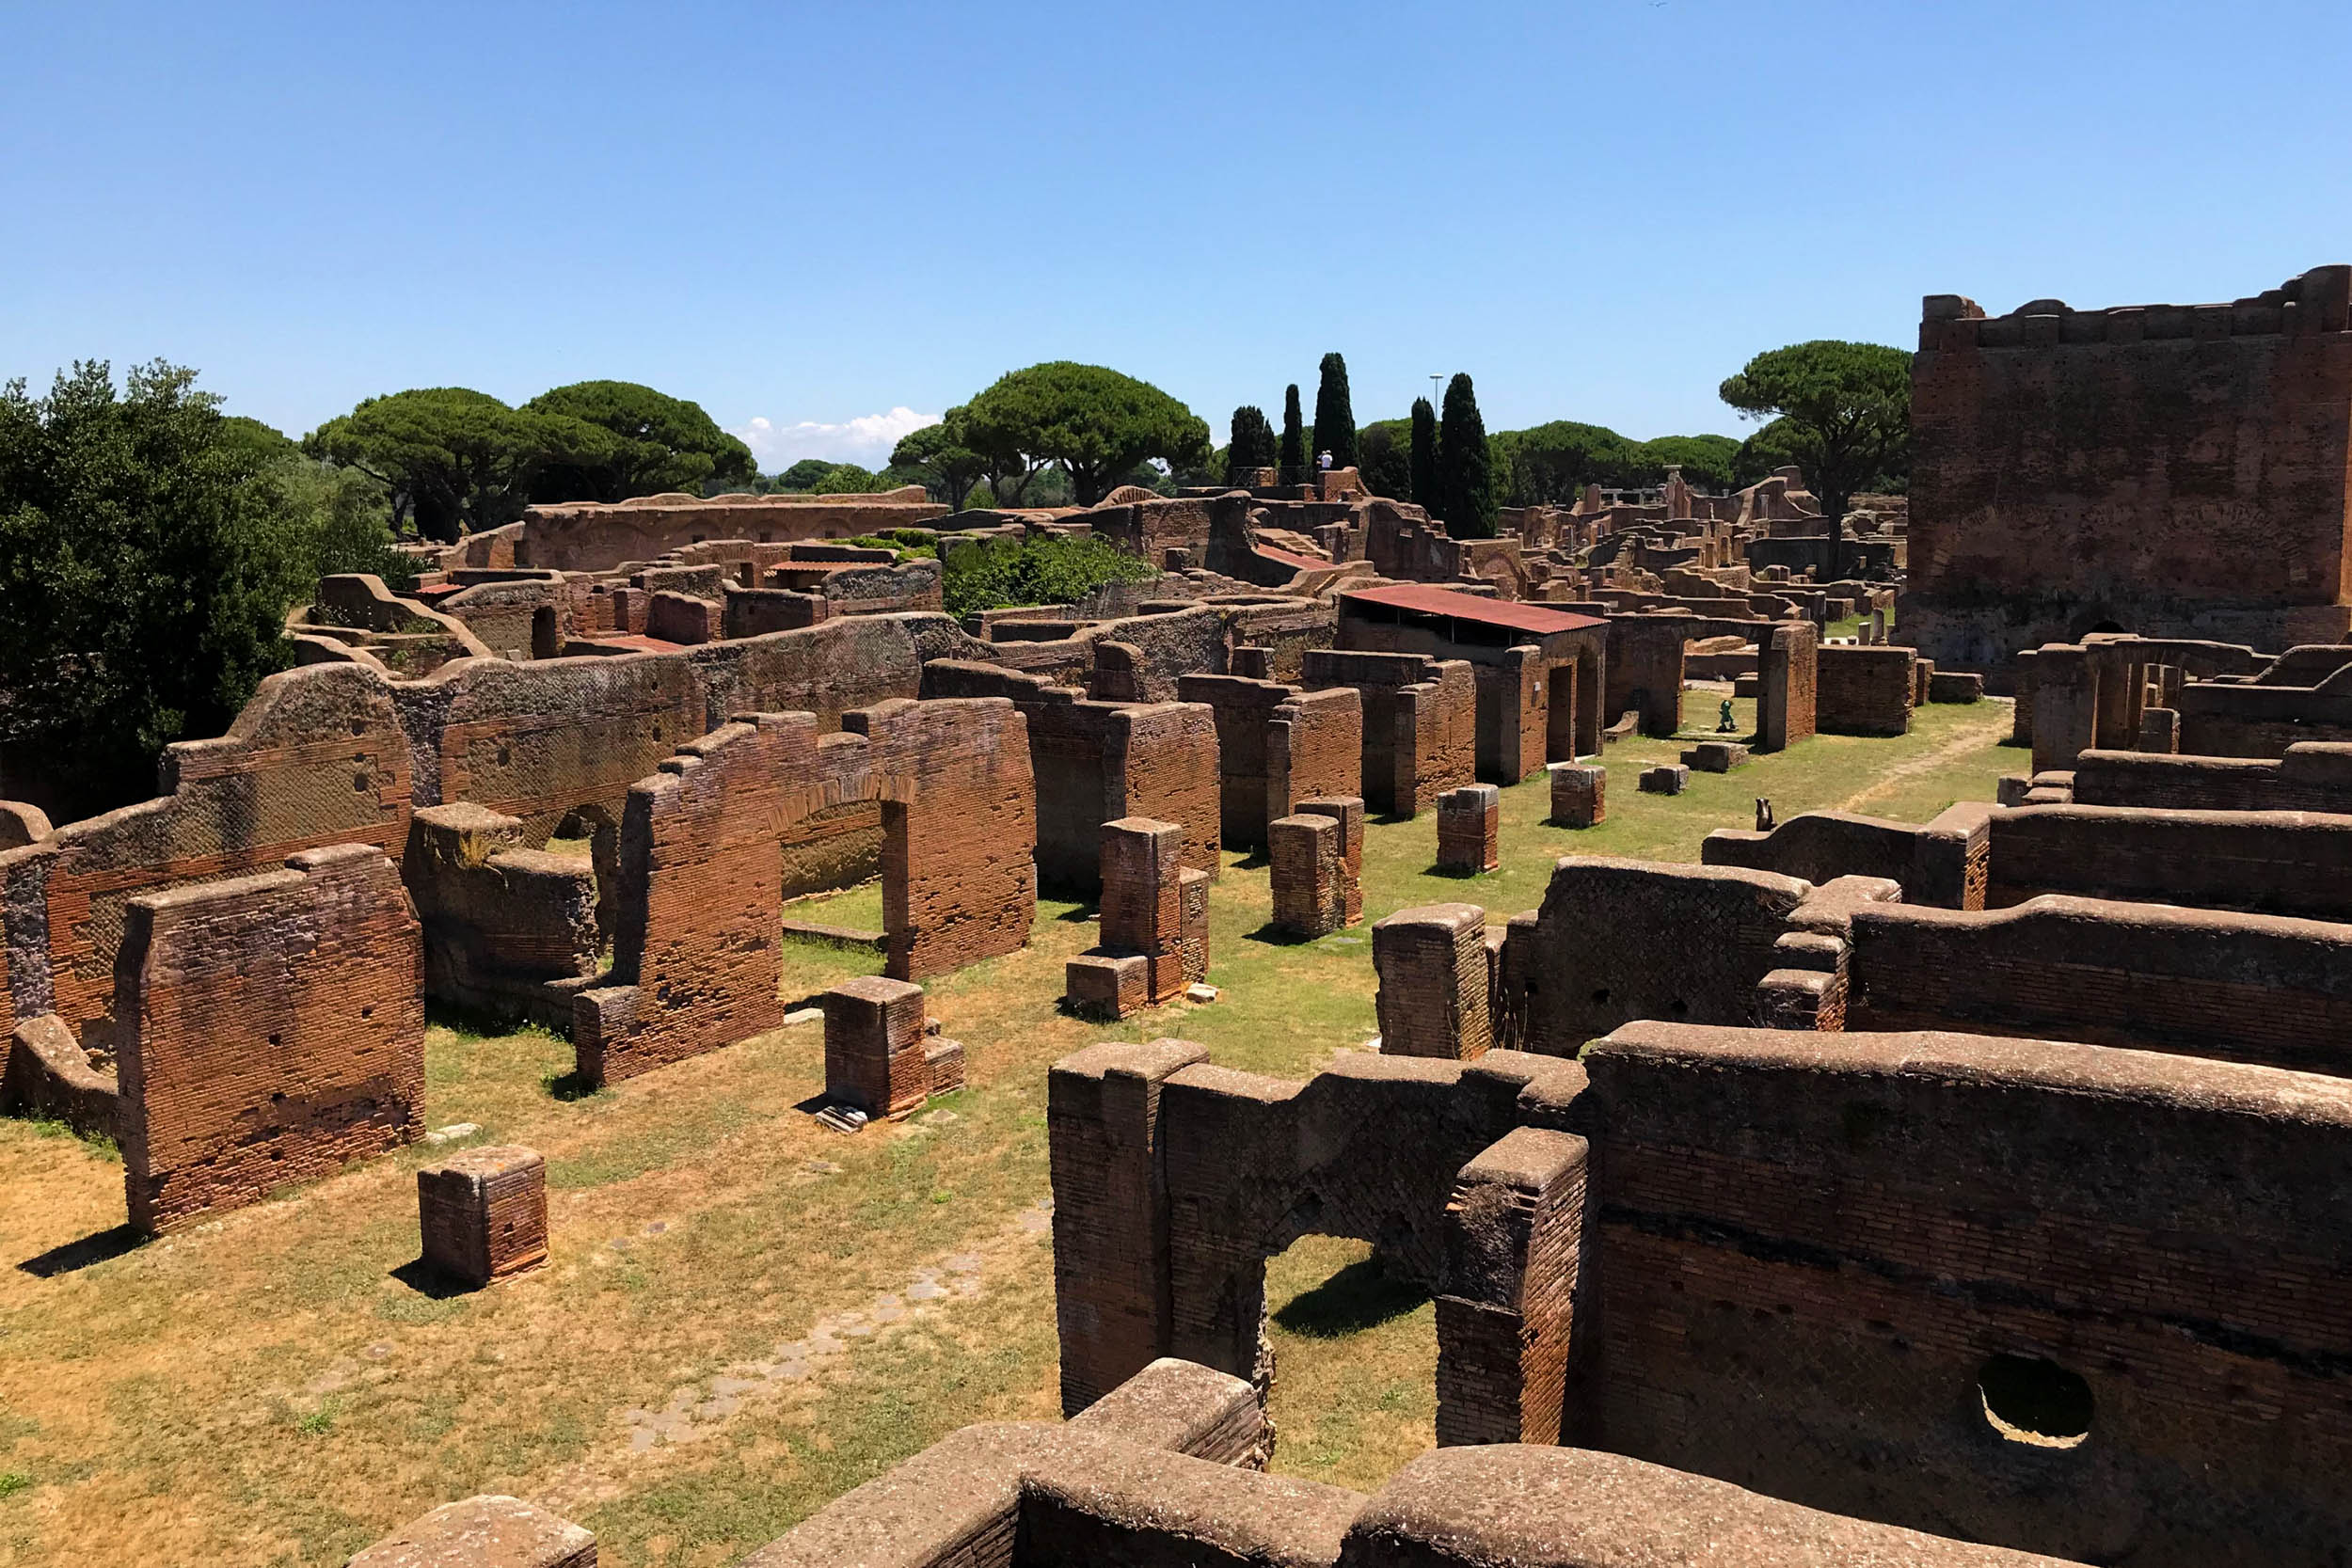 Giorgis' proposes that the coastal villas – she visited 35 and there are many more – be combined into a general itinerary to help tourists understand the full history of these sites within the Roman empire.